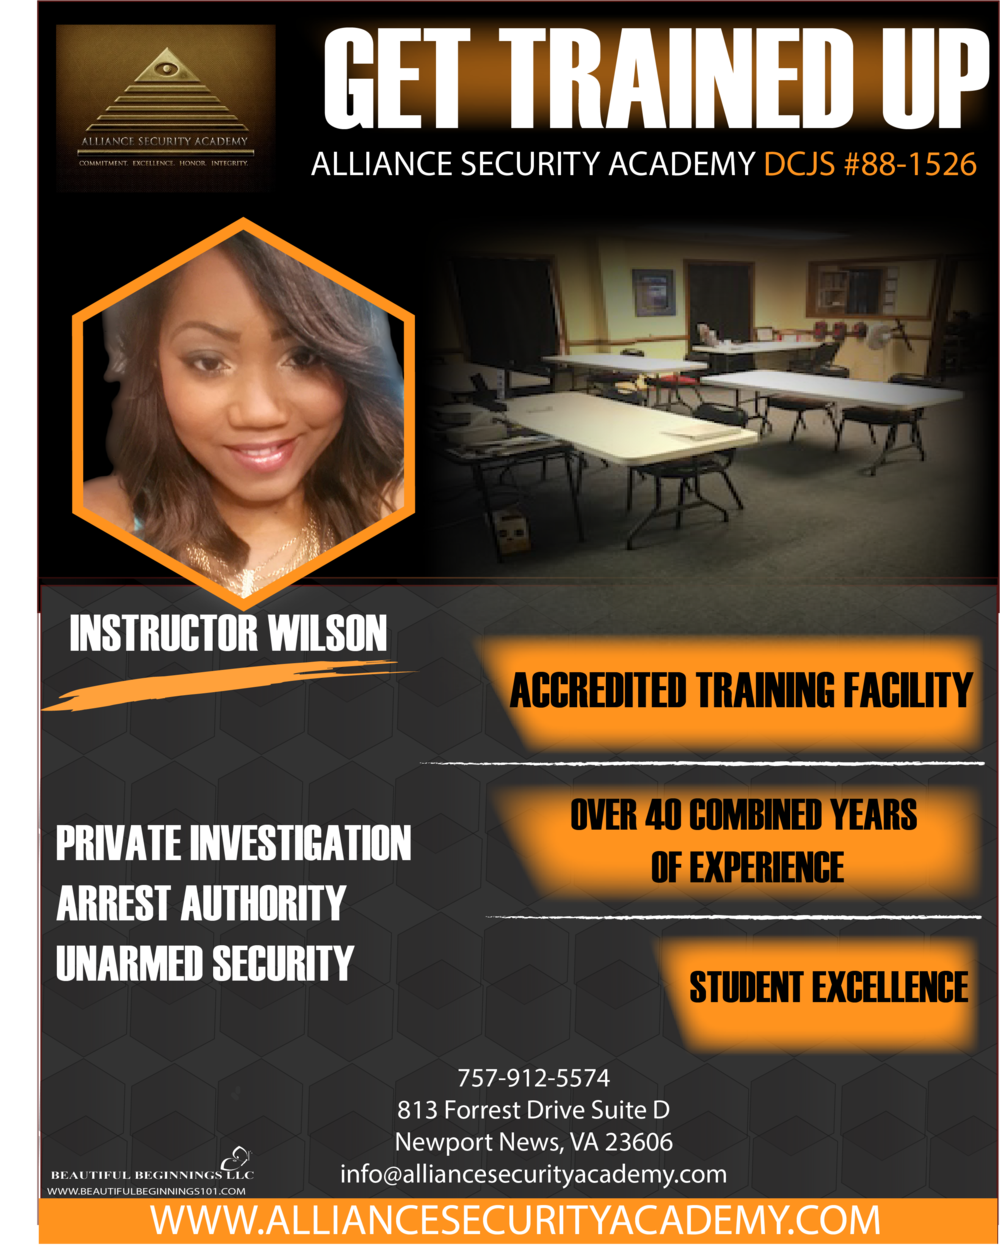 TRAINING FLYER CORPORATE